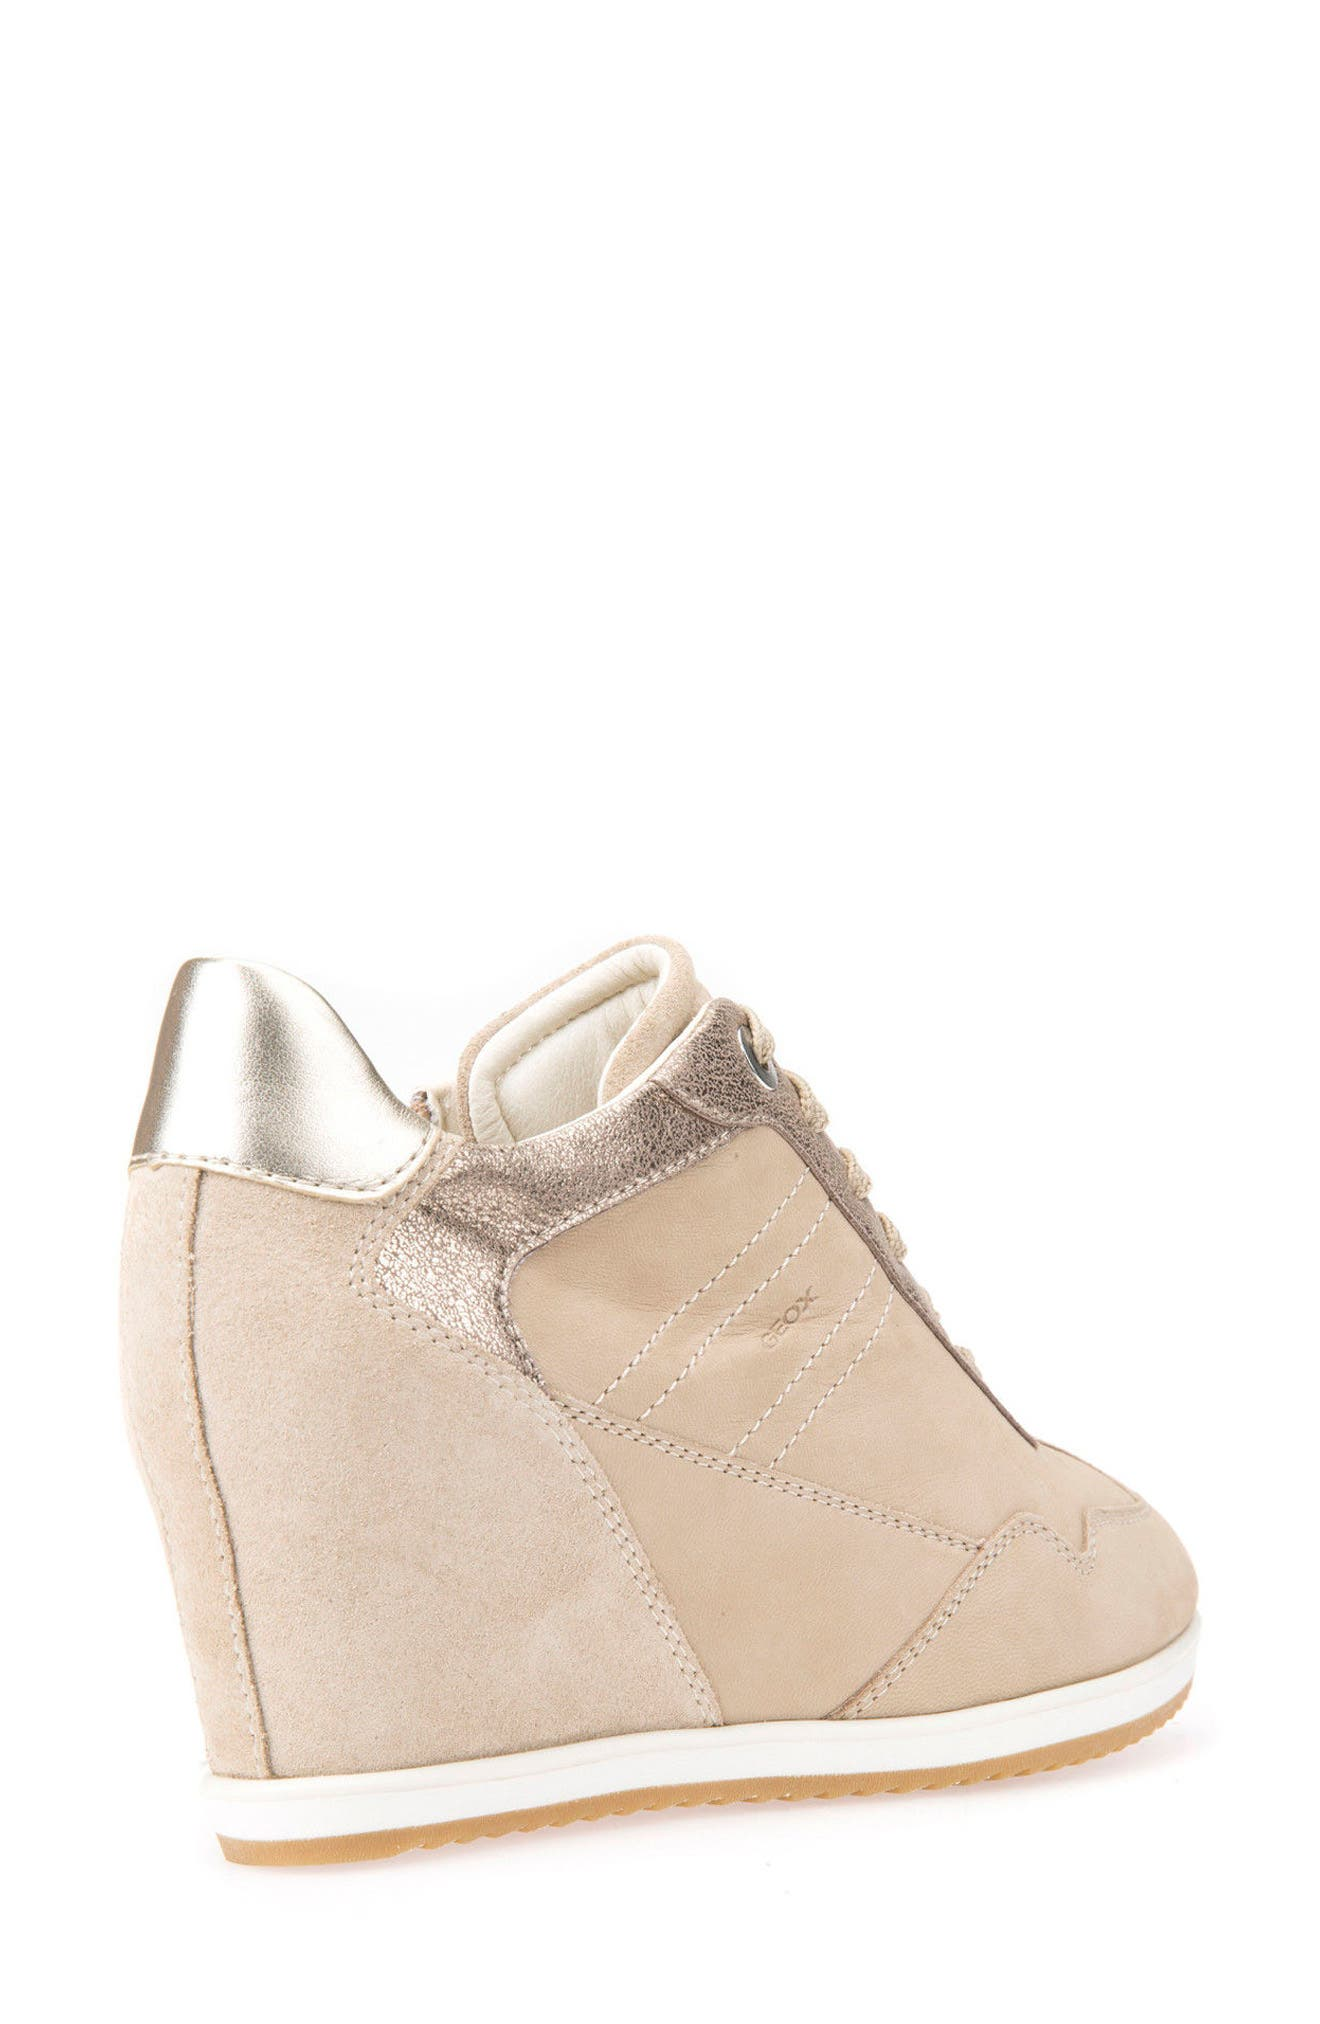 Illusion 34 Wedge Sneaker,                             Alternate thumbnail 2, color,                             SAND LEATHER